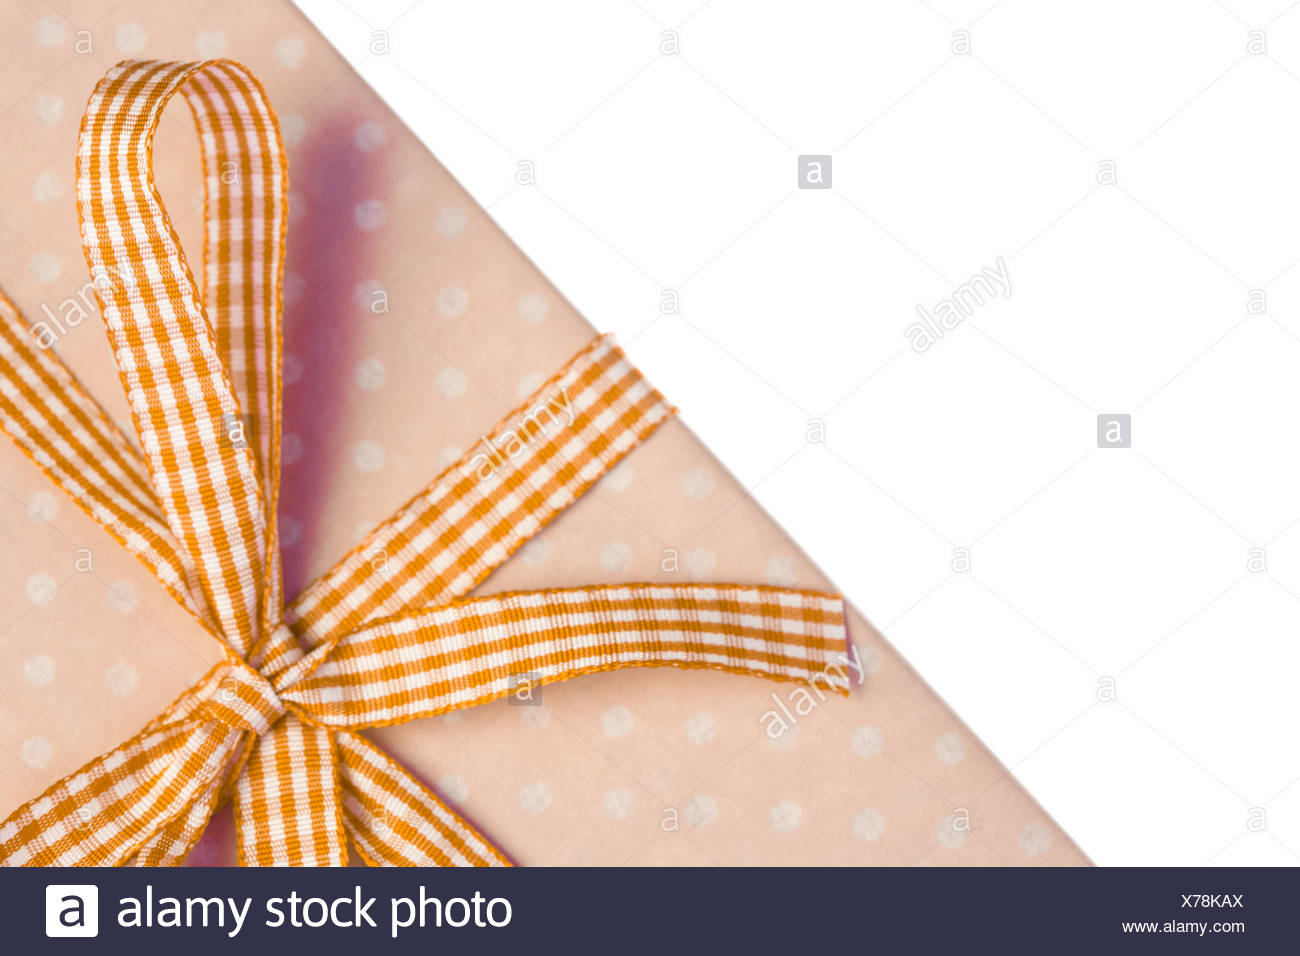 Yellow gift wrapped present with gingham ribbon - Stock Image